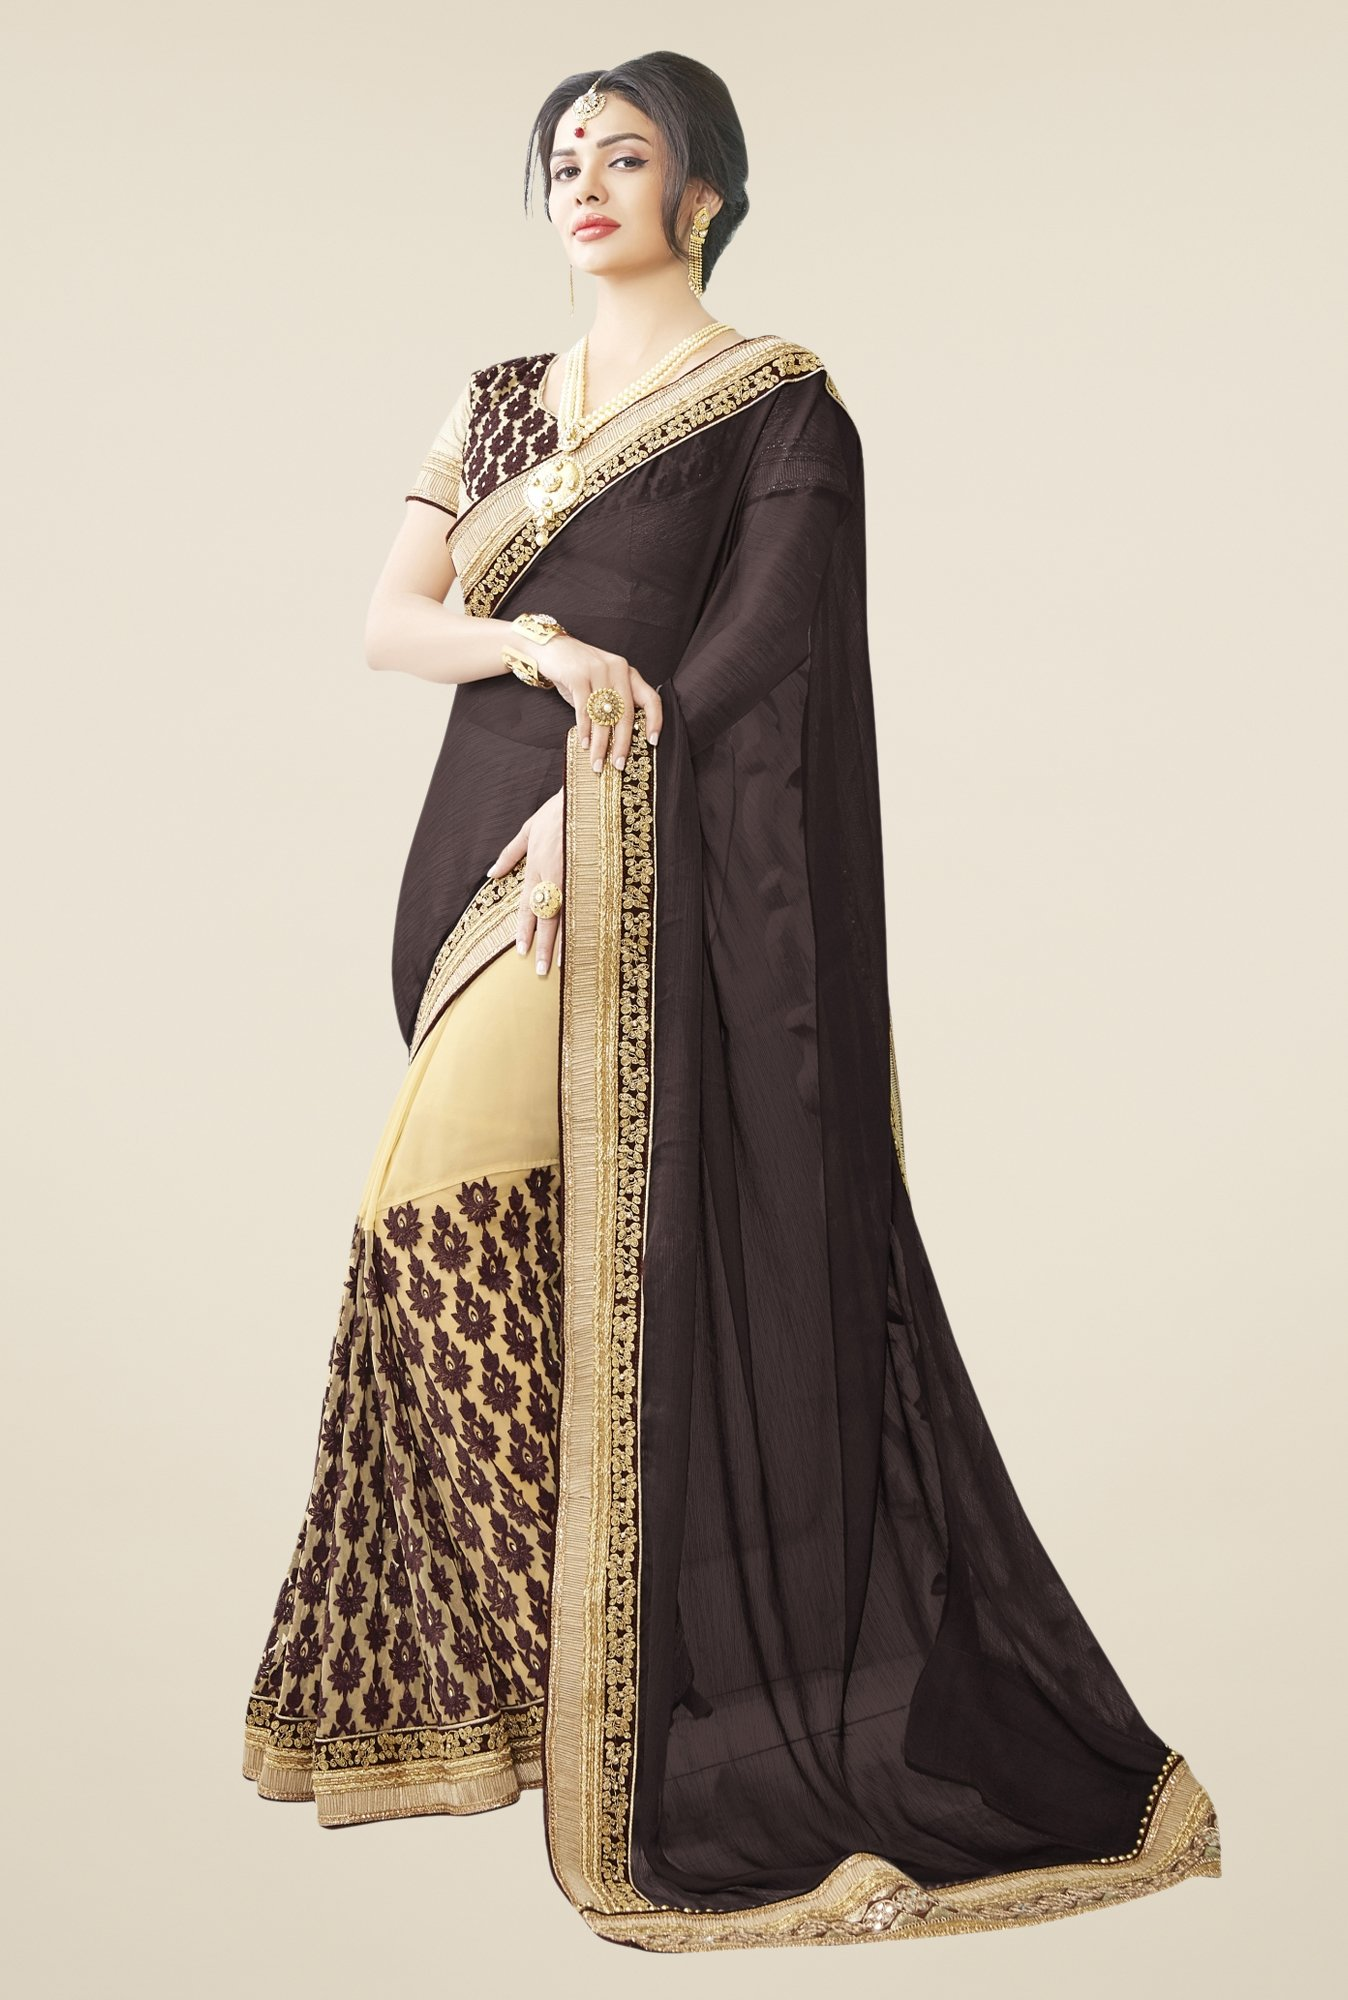 Triveni Beige & Black Embroidered Faux Georgette Saree